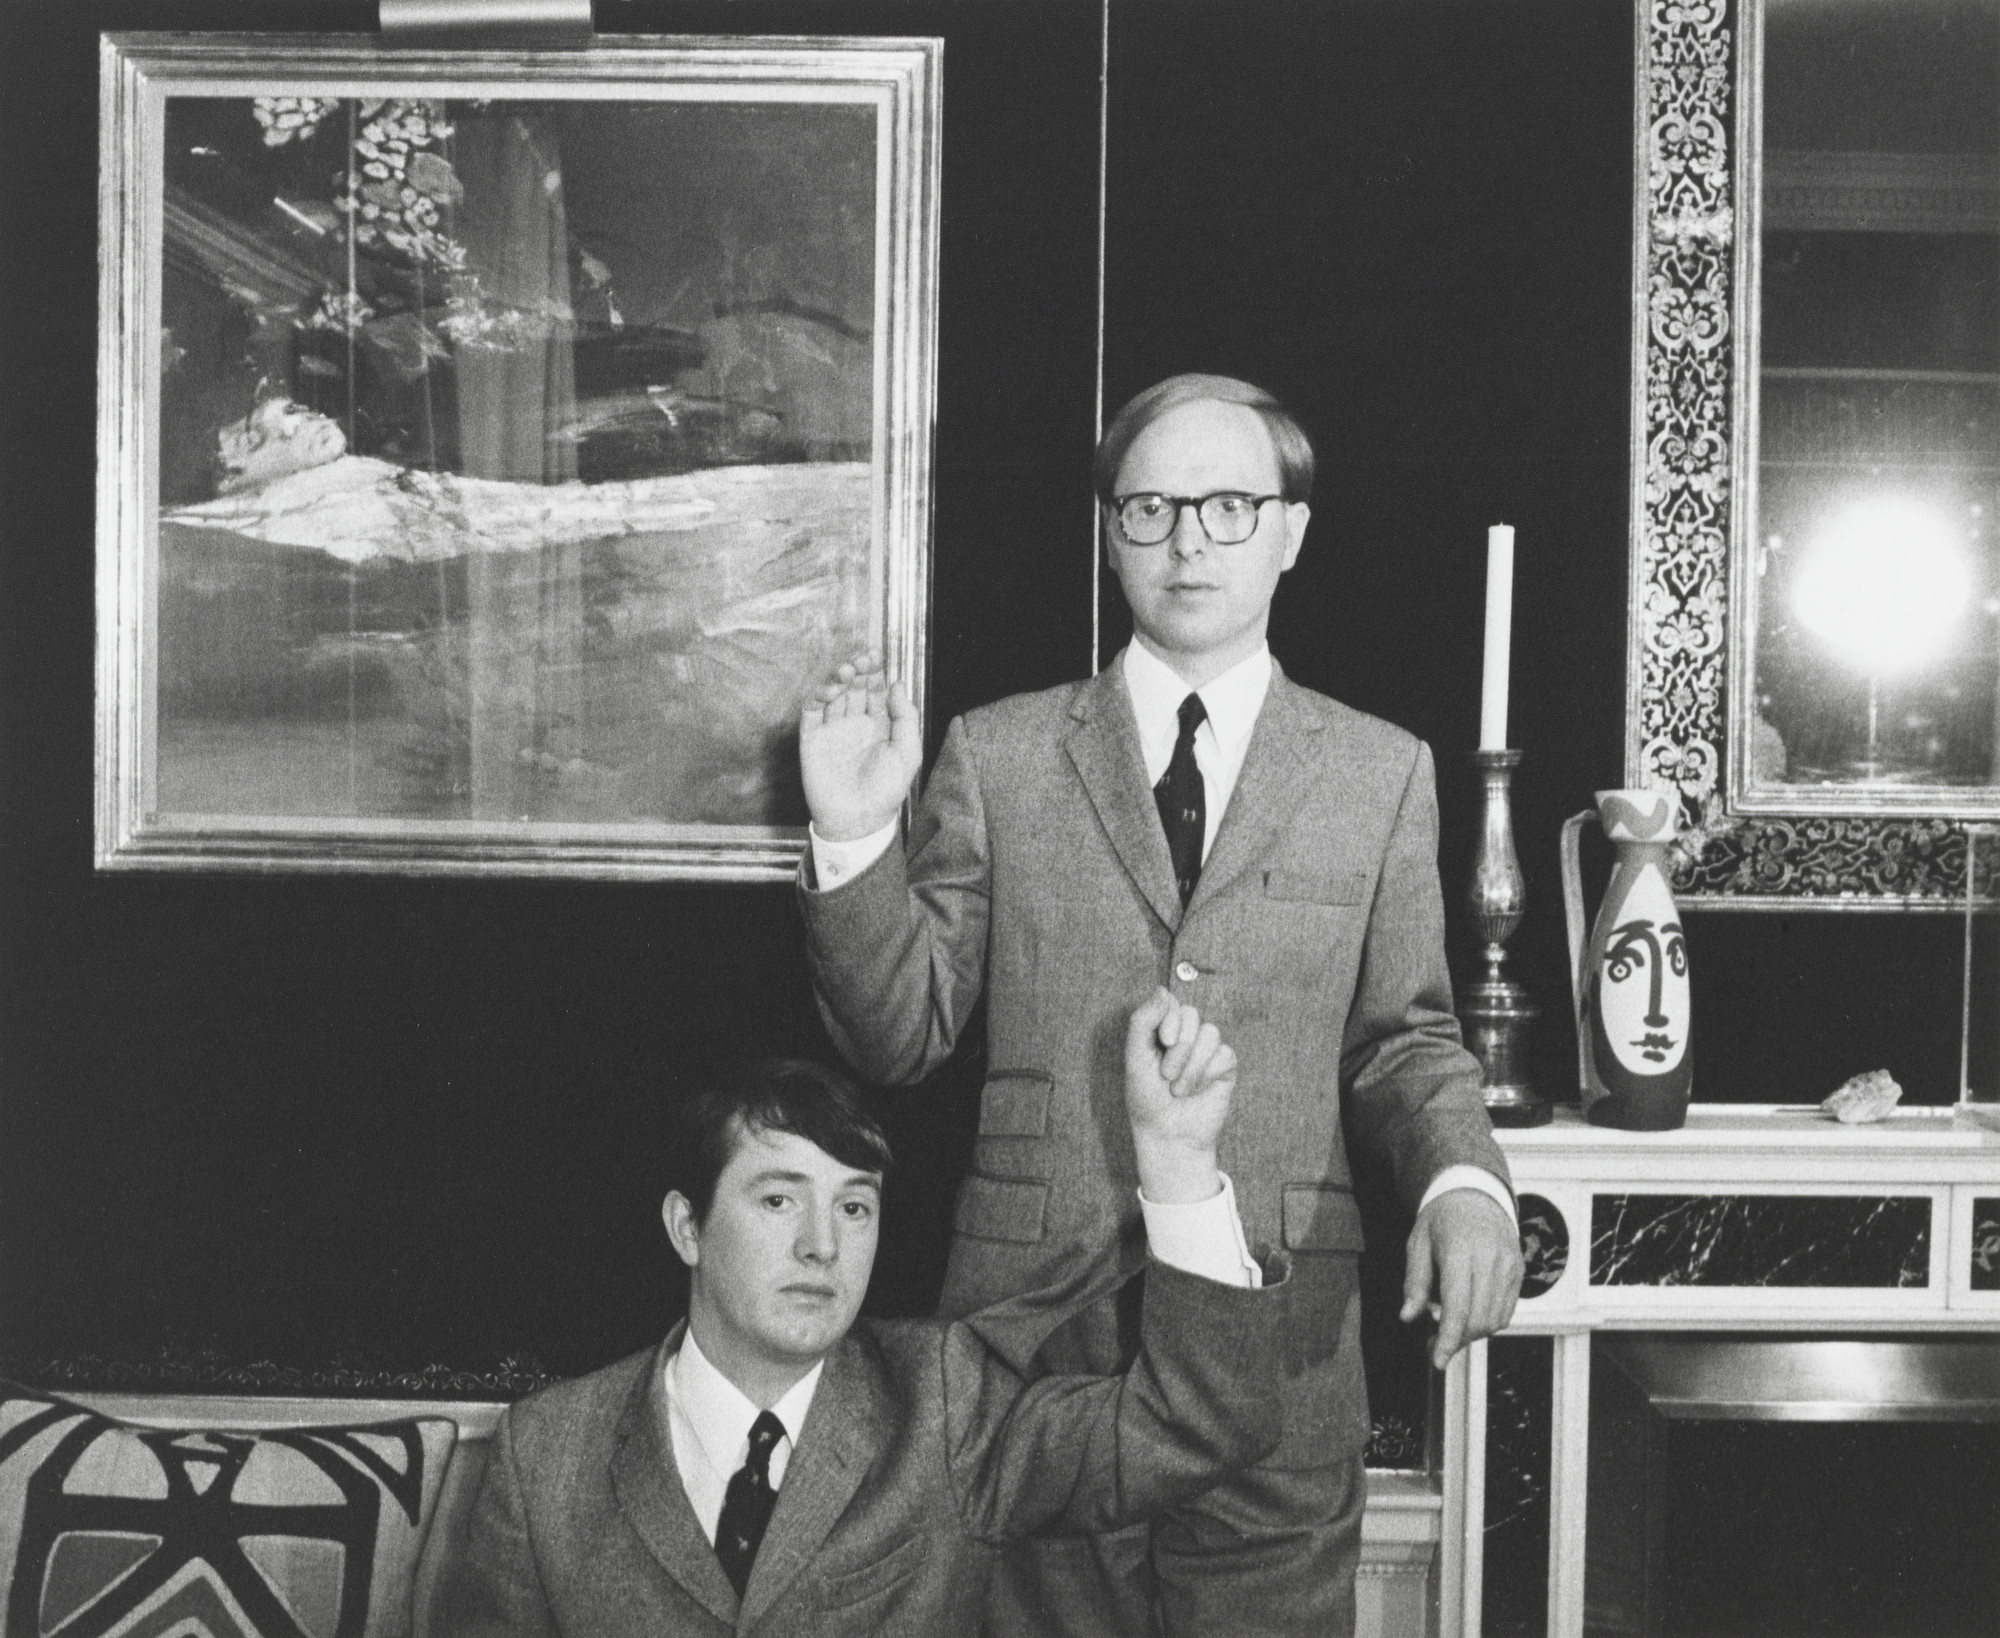 Cecil Beaton. Portrait of Gilbert & George at the Photographer's Home. 1974